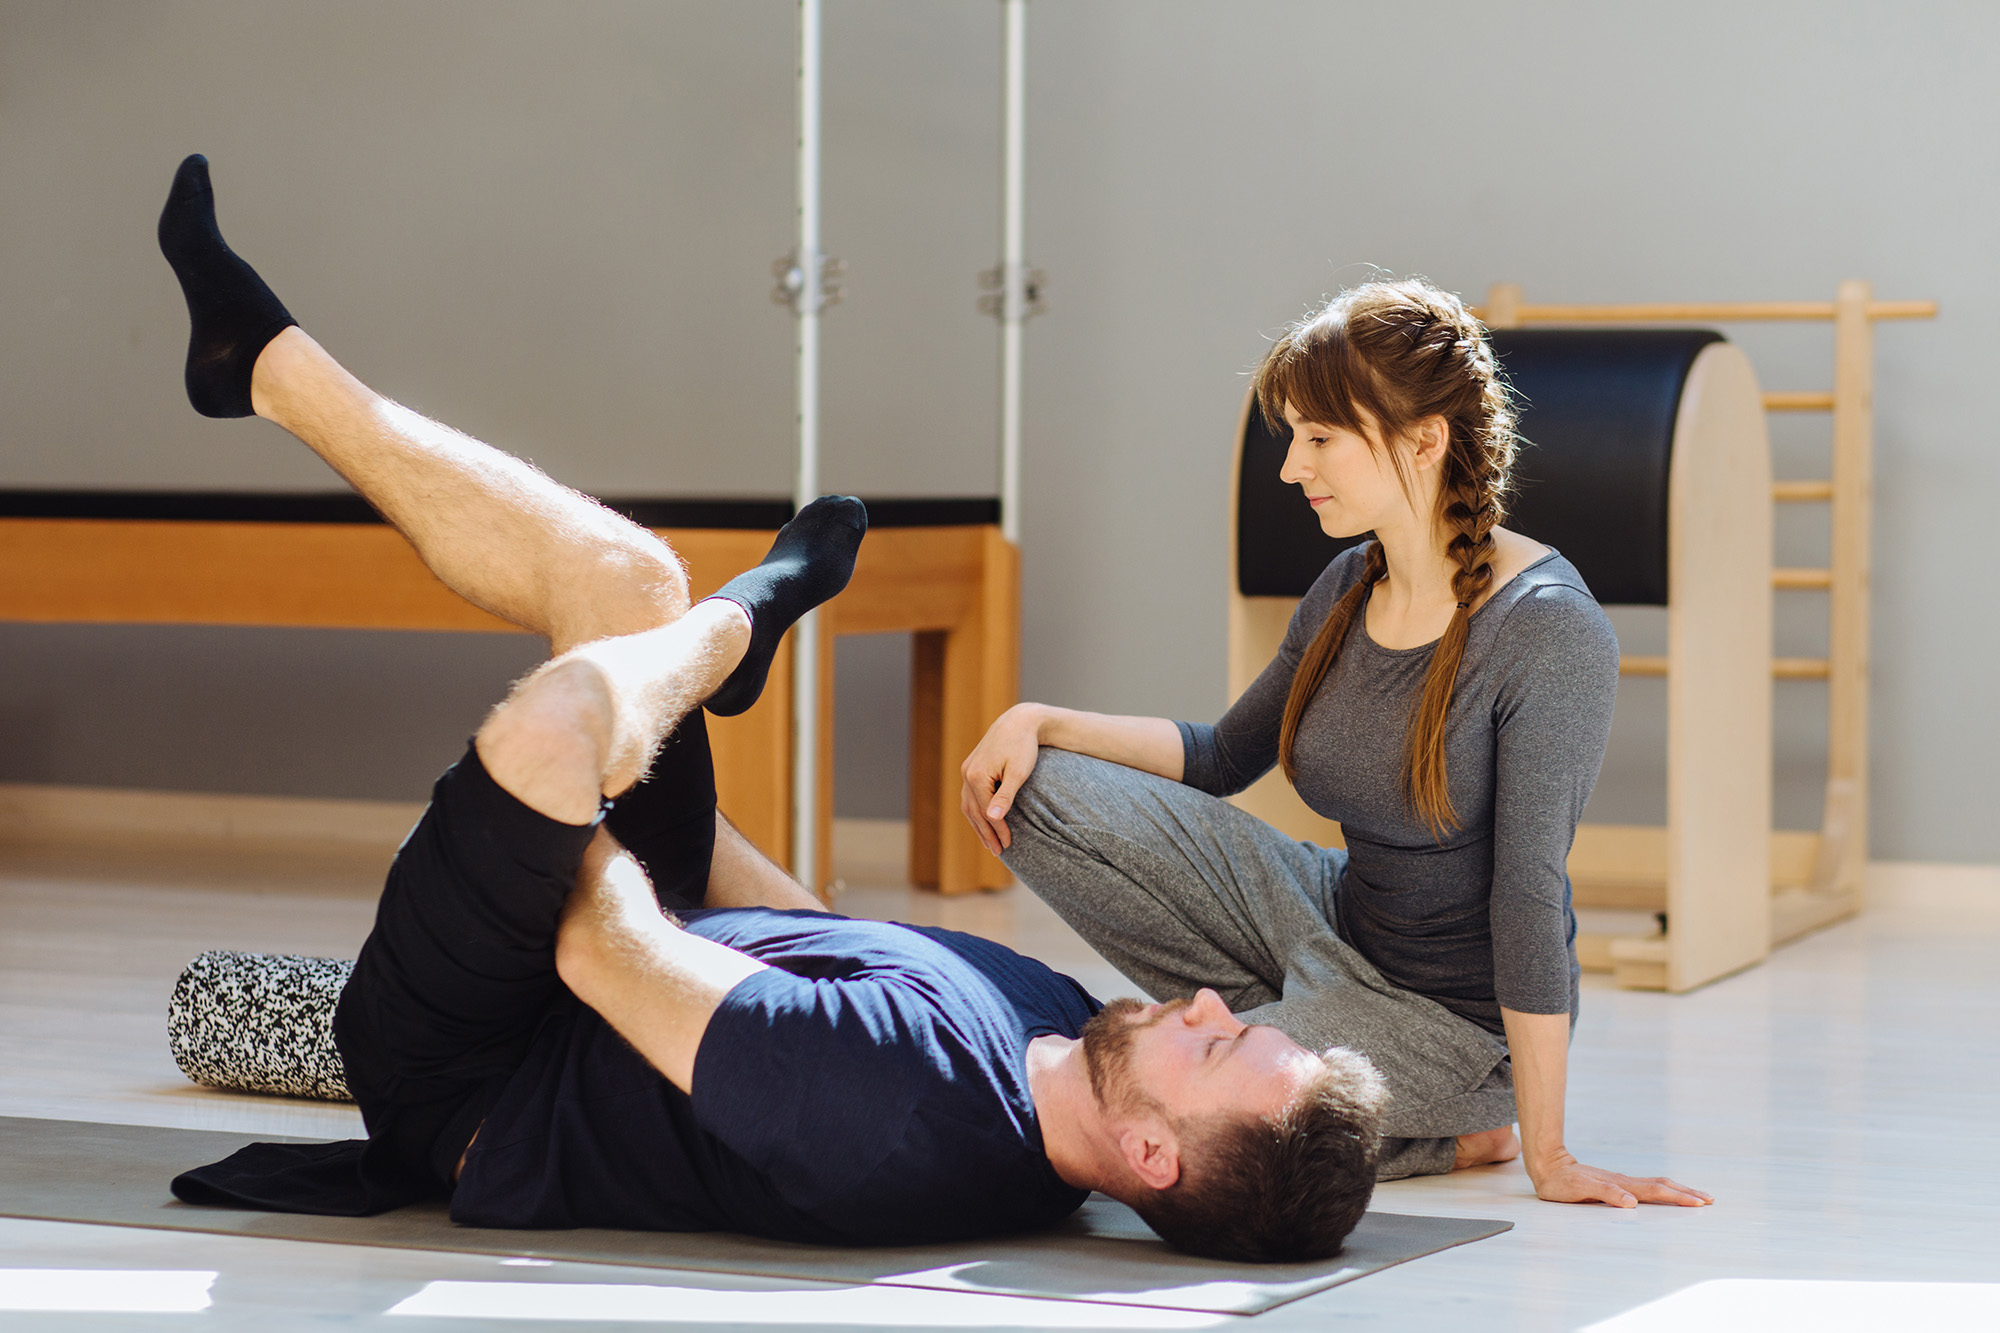 A young woman pilates instructor teaching the rehabilitation pilates method to a man lying on a mat in a pilates studio